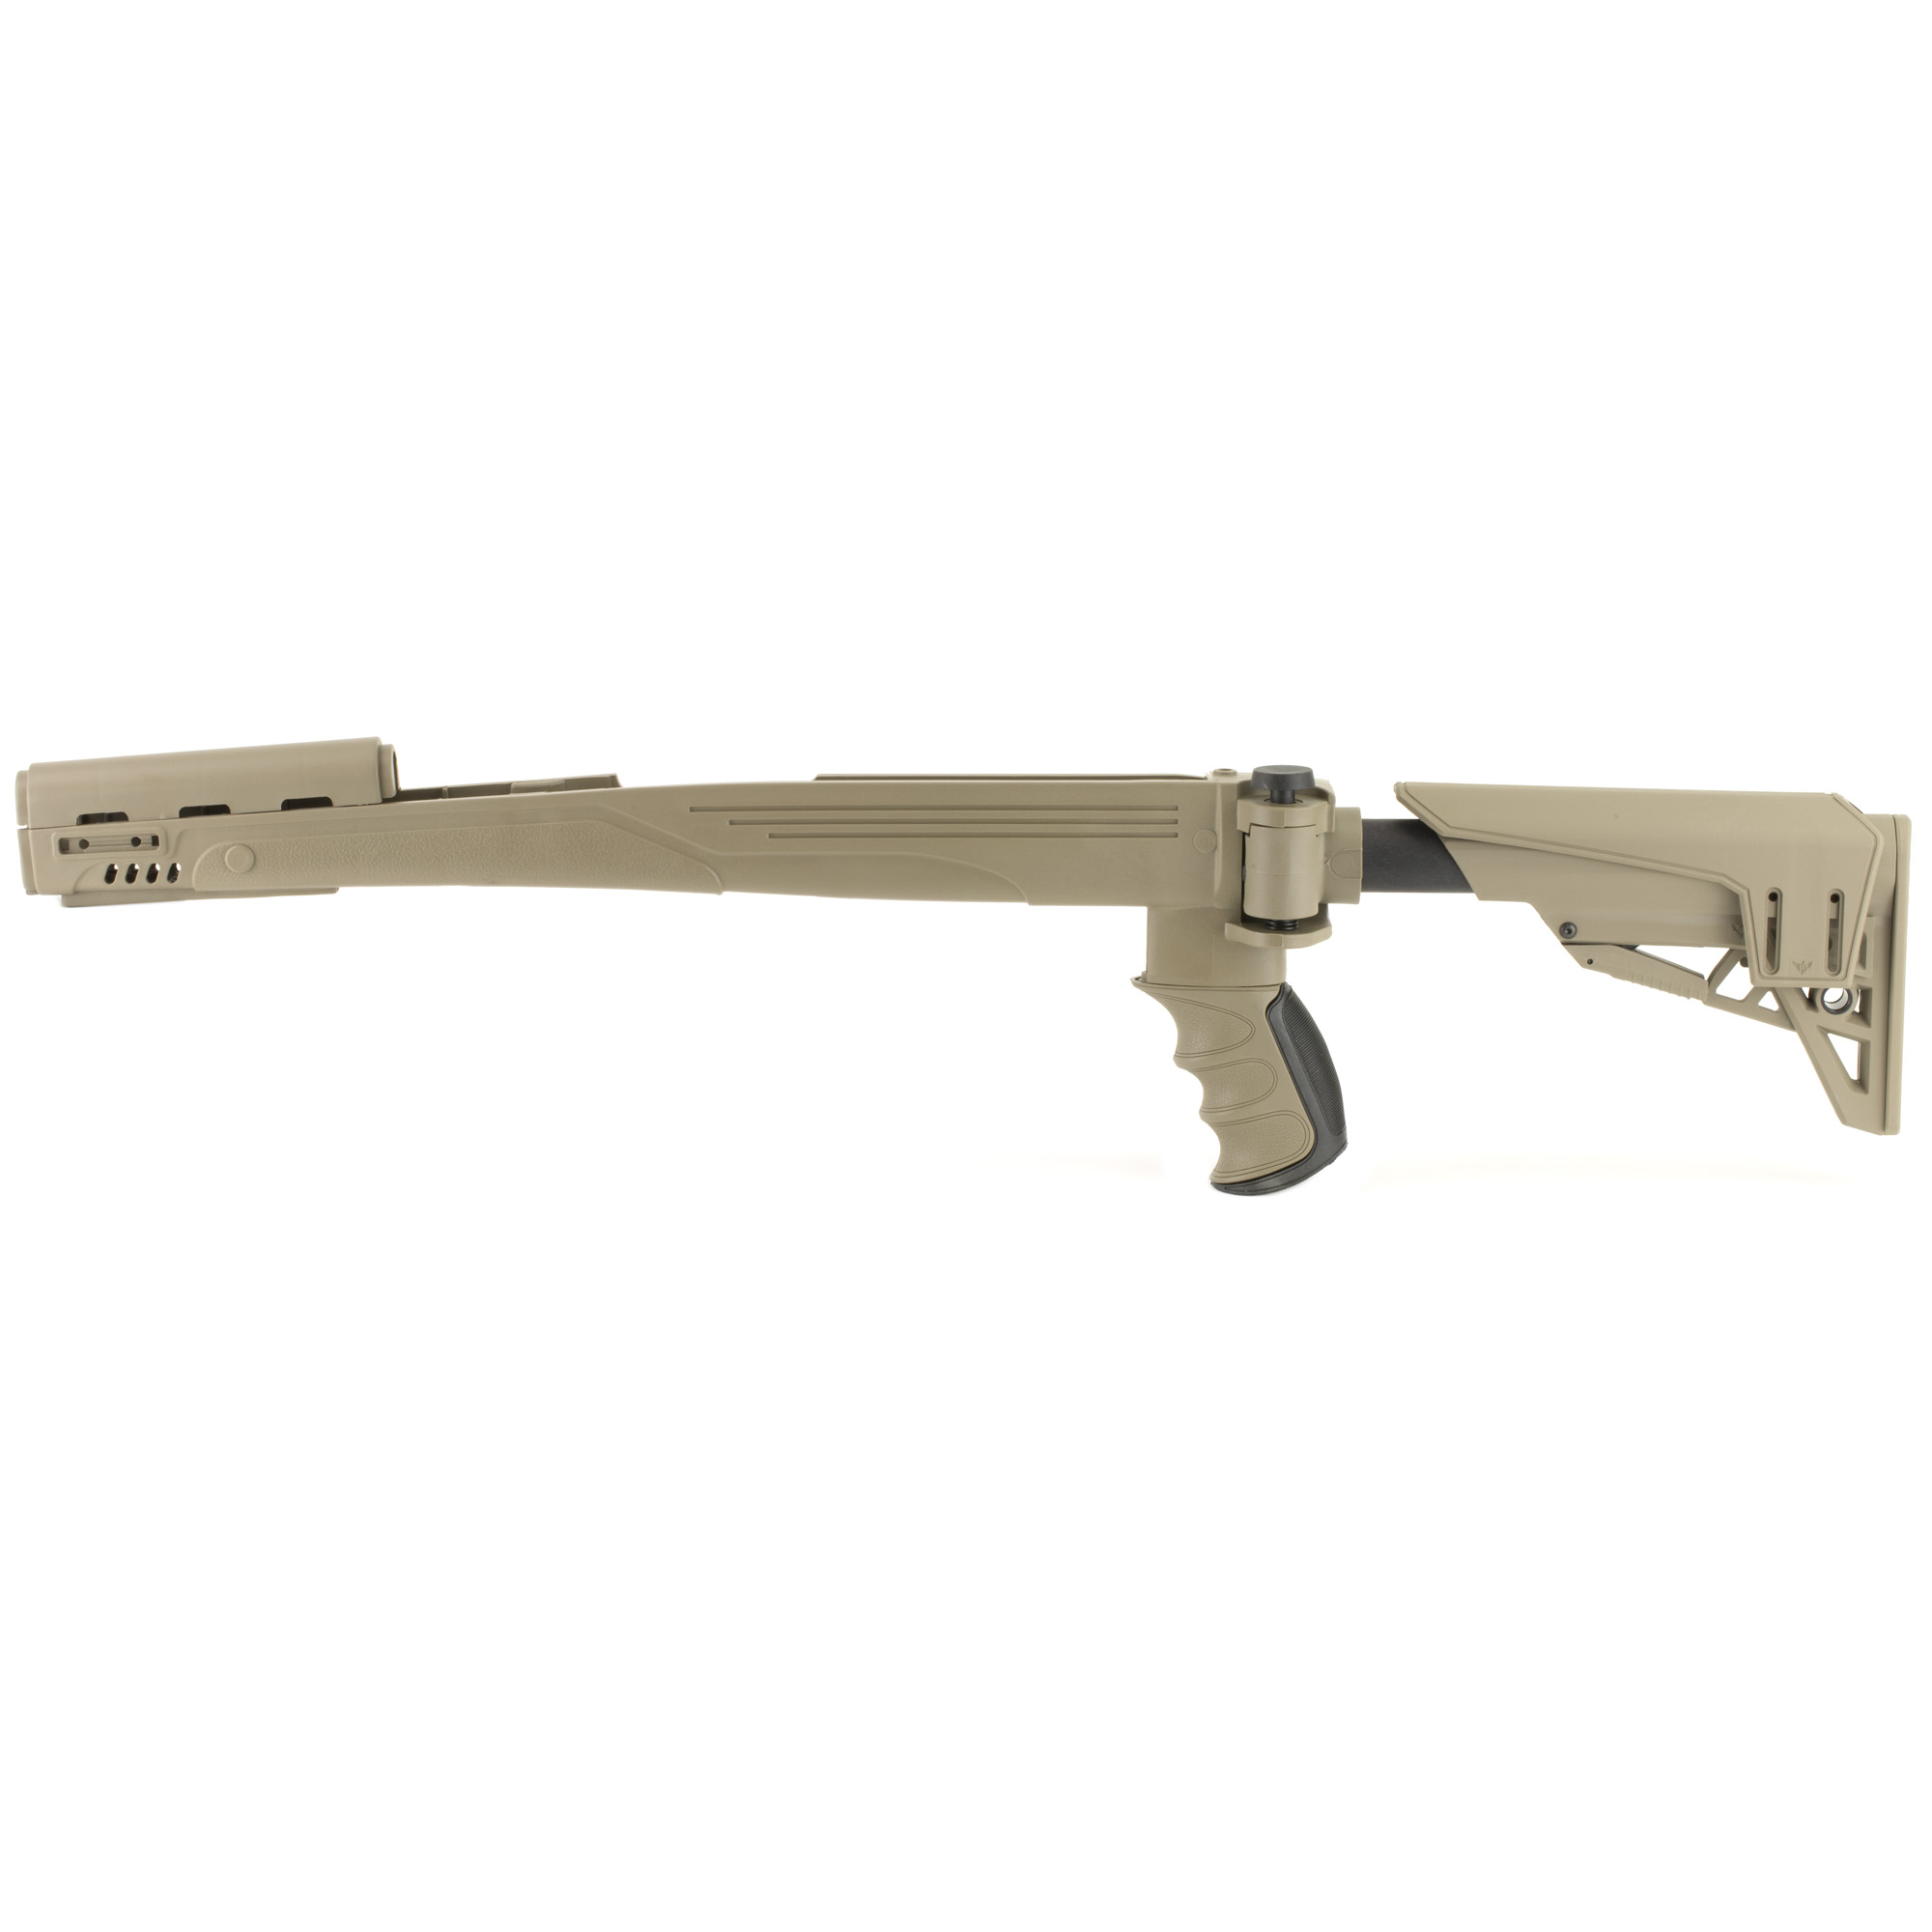 """The Advanced Technology Int. Strike force SKS Stock is a six-position adjustable side-folding TactLite stock that folds to the left of the receiver. It fits SKS Rifles. (Minor modification may be required in some cases. Blade bayonet must be removed.). The TracLock System eliminates horizontal and vertical movement of the stock on the buffer tube and provides smooth secure stock adjustments. It has a dual sided QD attachment point and a removable/adjustable cheek rest system that has an elongated design to fit all users. Includes a short cheek rest with 1/2"""" of adjustment. The X Series thin recoil pad is non-slip and removable and the X1 Style pistol grip has a Sure-Grip texture. There are four forward Picatinny Rail locations- One 4"""" Picatinny Rail"""" Two 2"""" Picatinny Rails and One 2"""" swivel stud Picatinny Rail."""